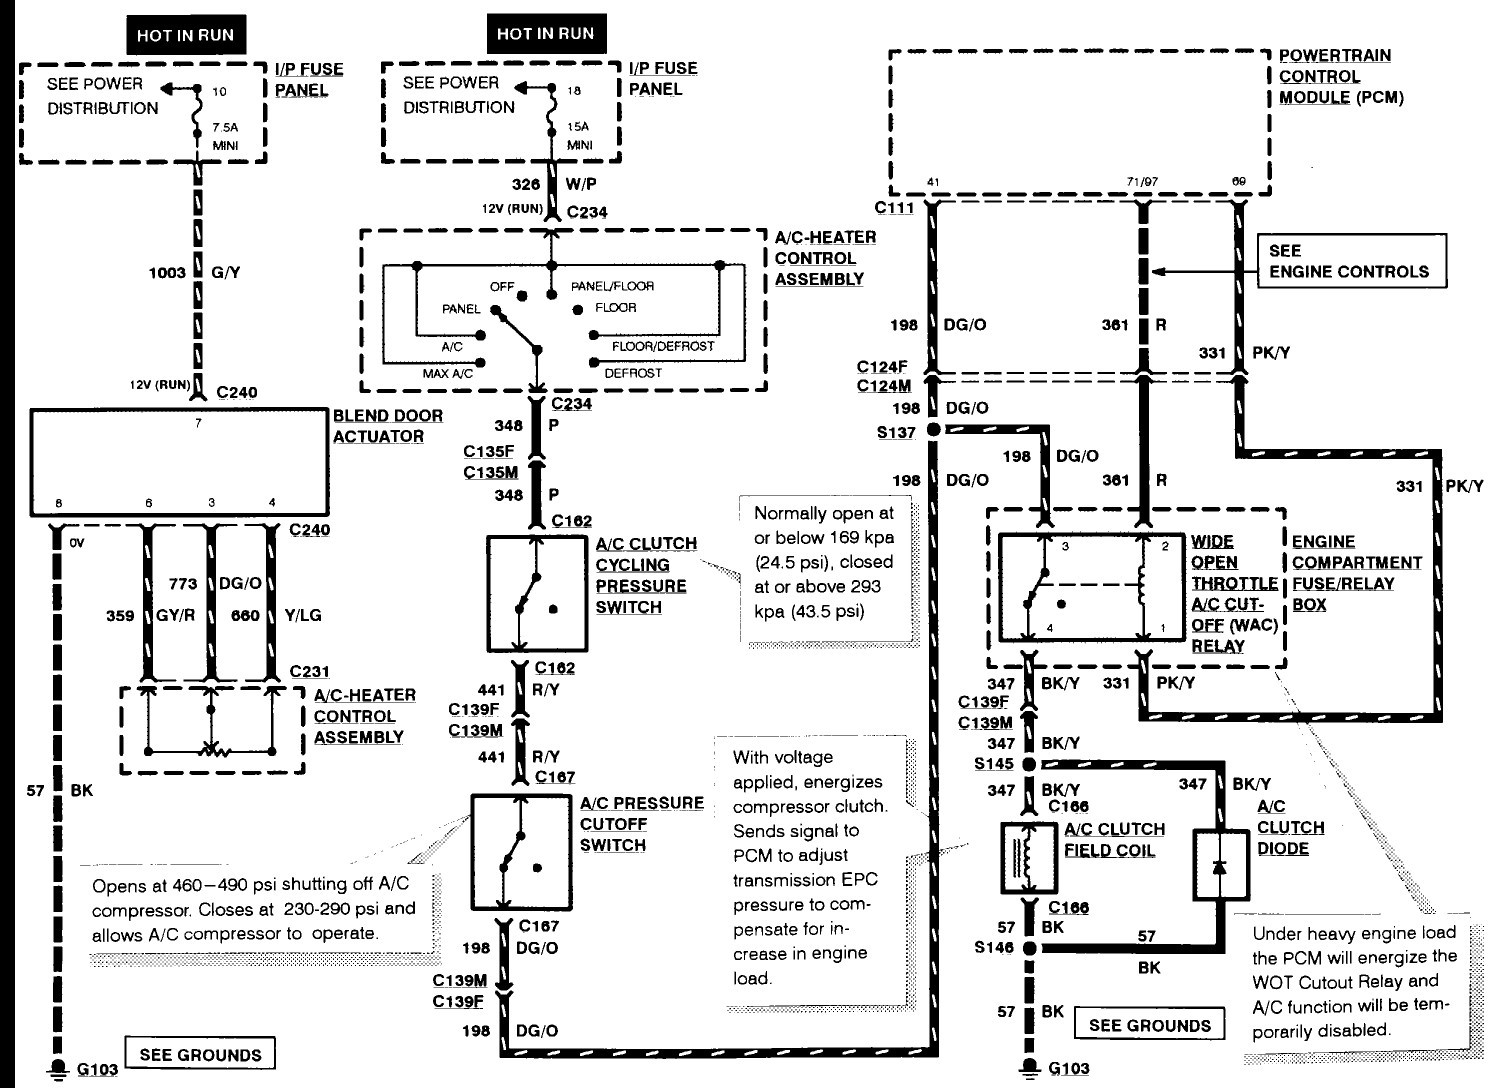 A C Compressor Clutch Wiring Diagram | Wiring Liry A C Compressor Clutch Wiring Diagram on